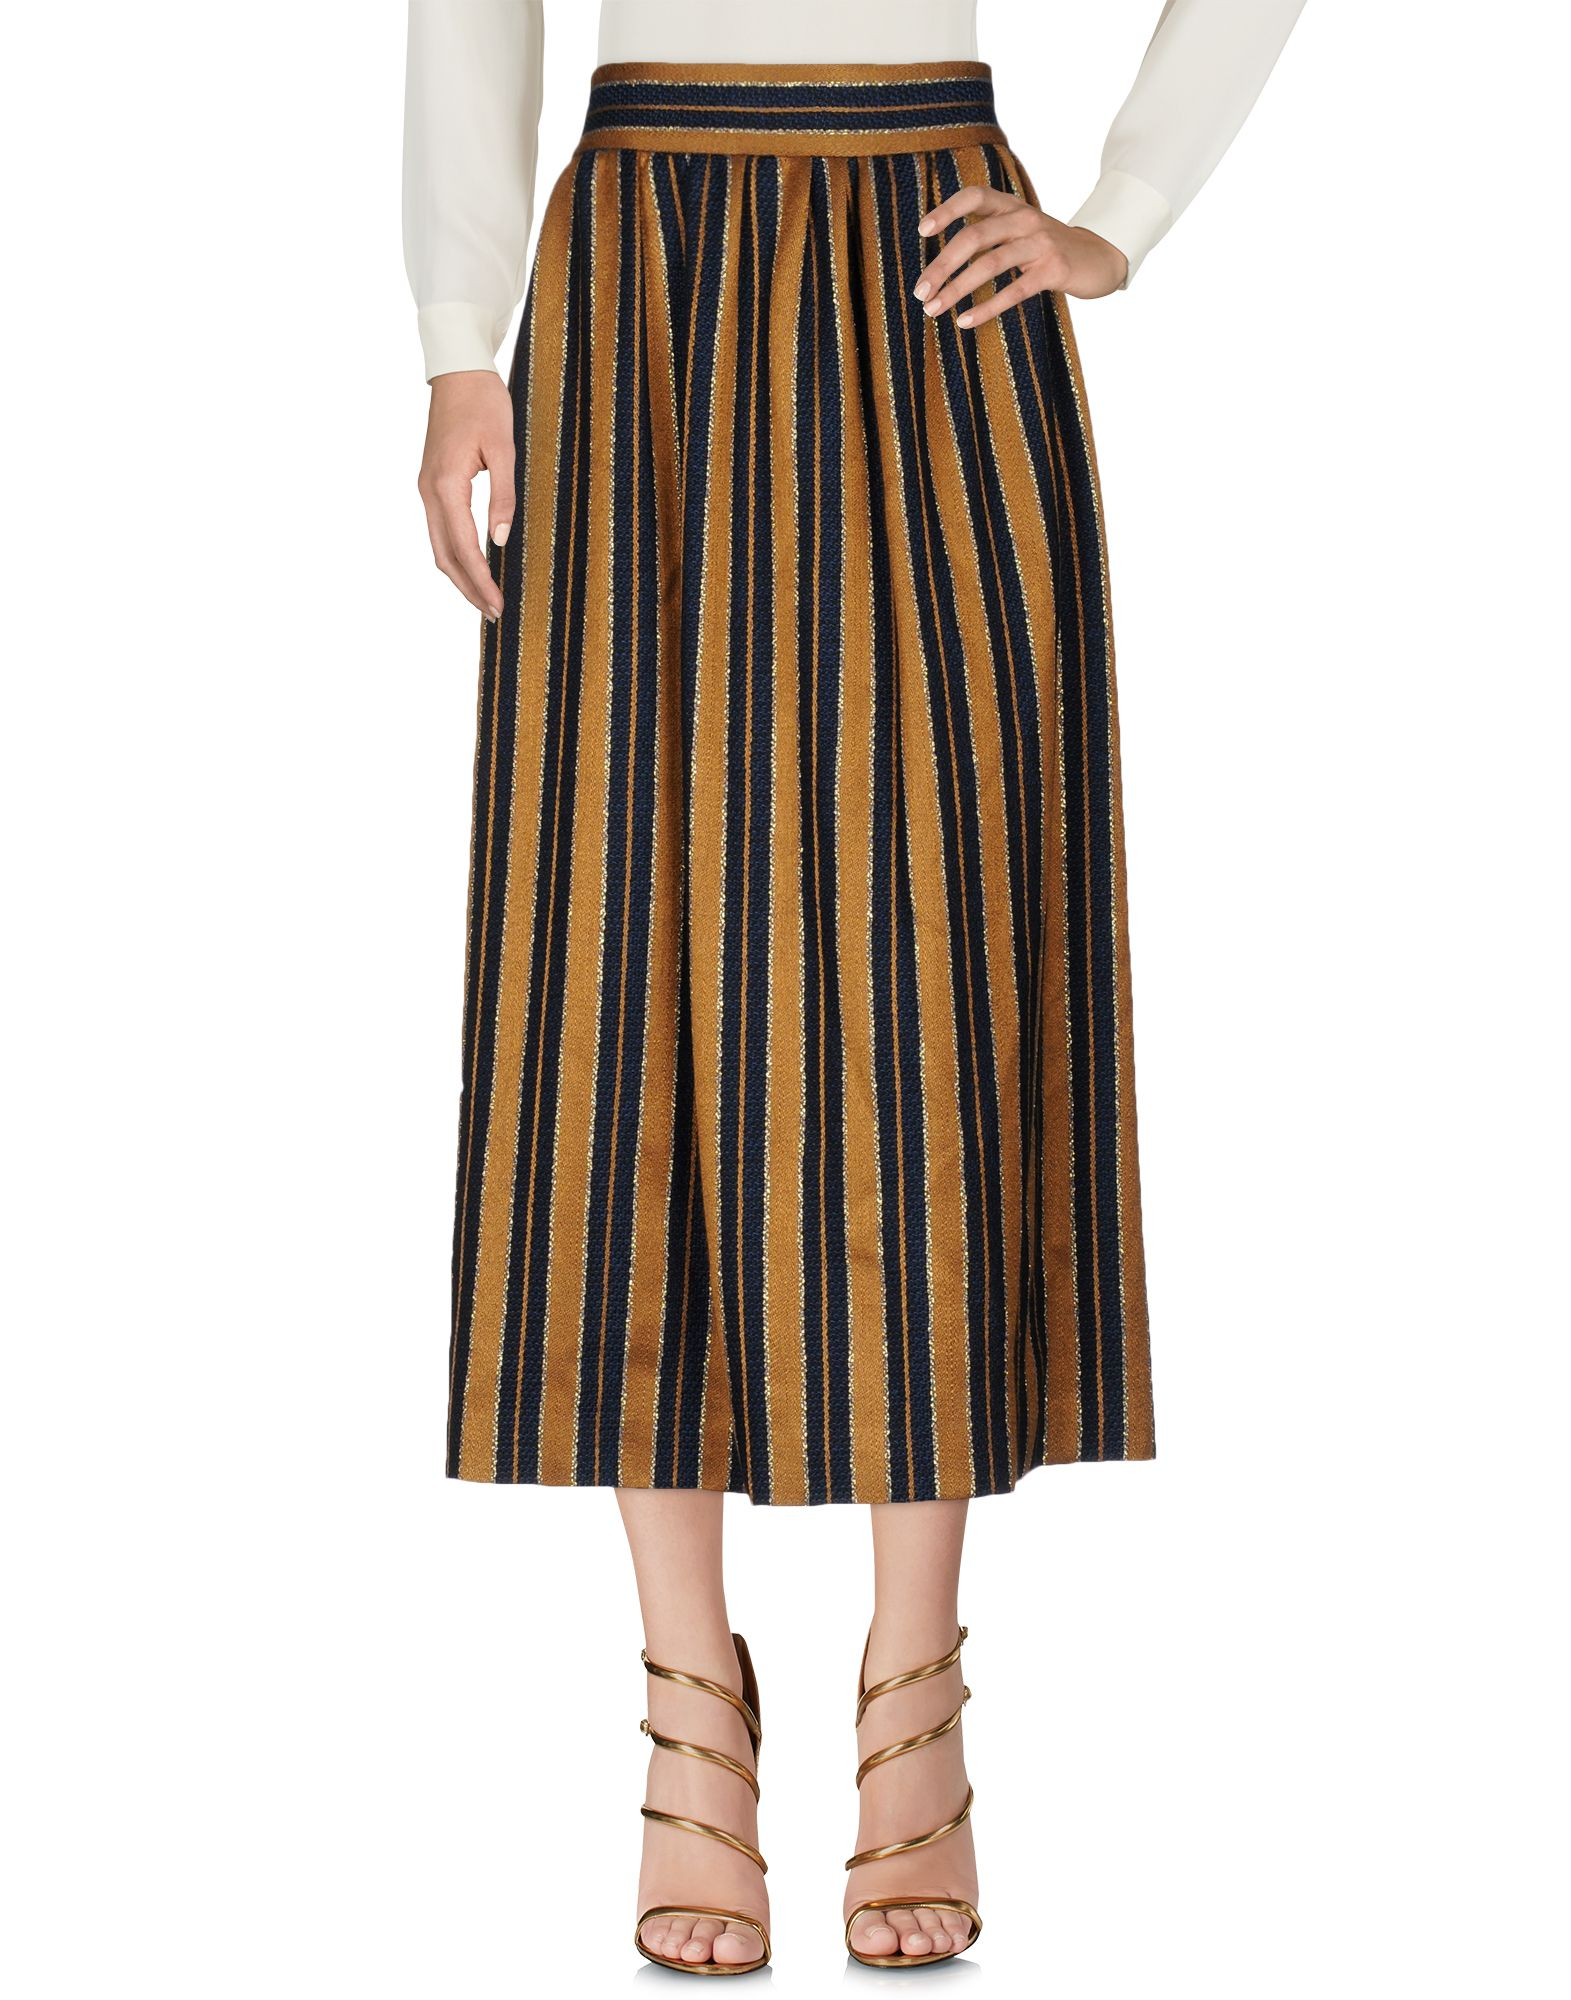 BY. BONNIE YOUNG Maxi Skirts in Ocher